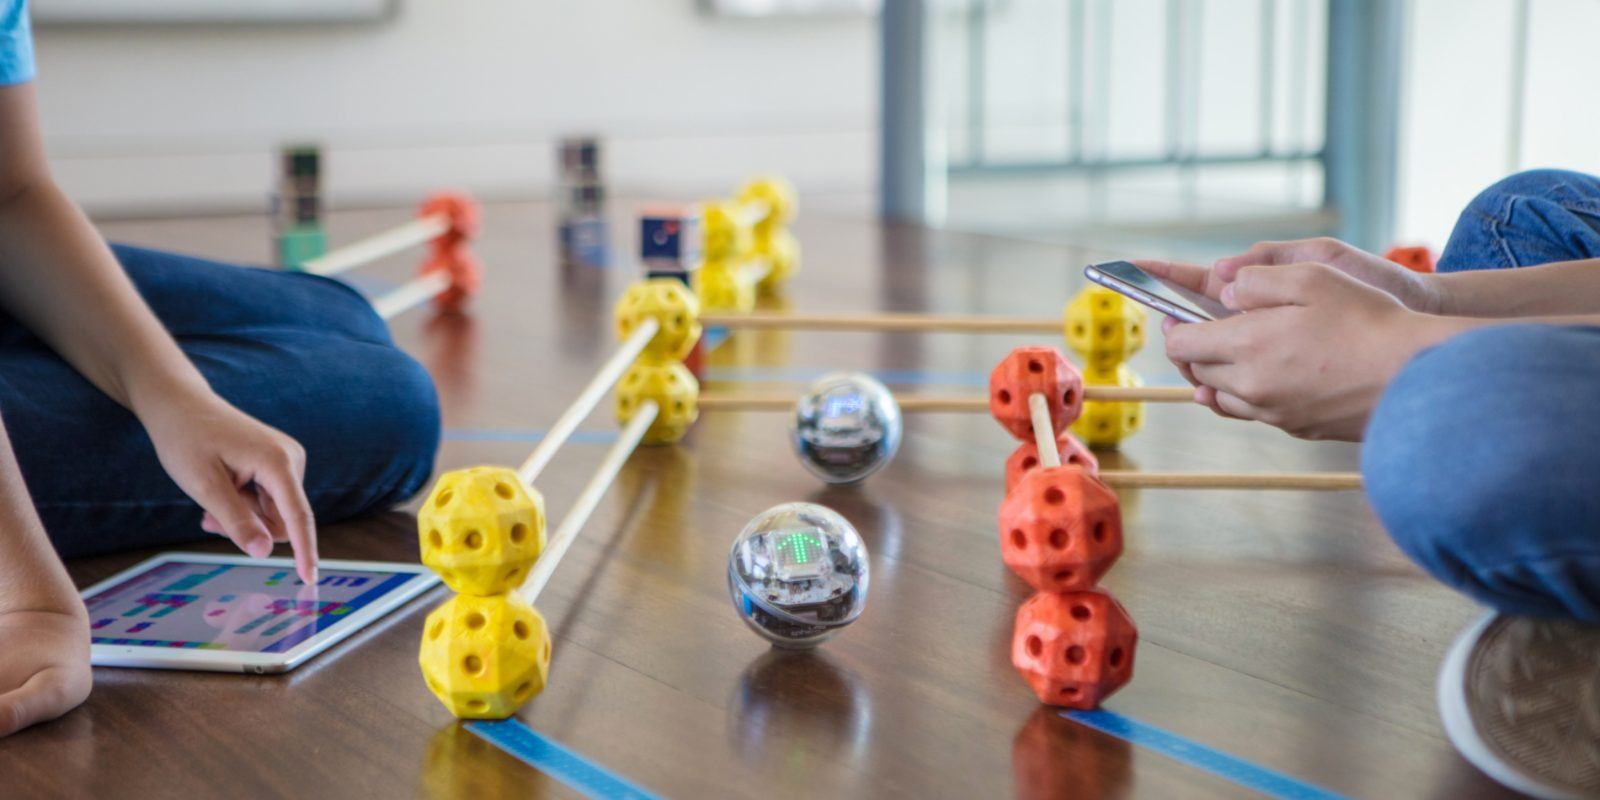 Sphero rolls out new BOLT robotic ball w/ education-focused coding, games, more